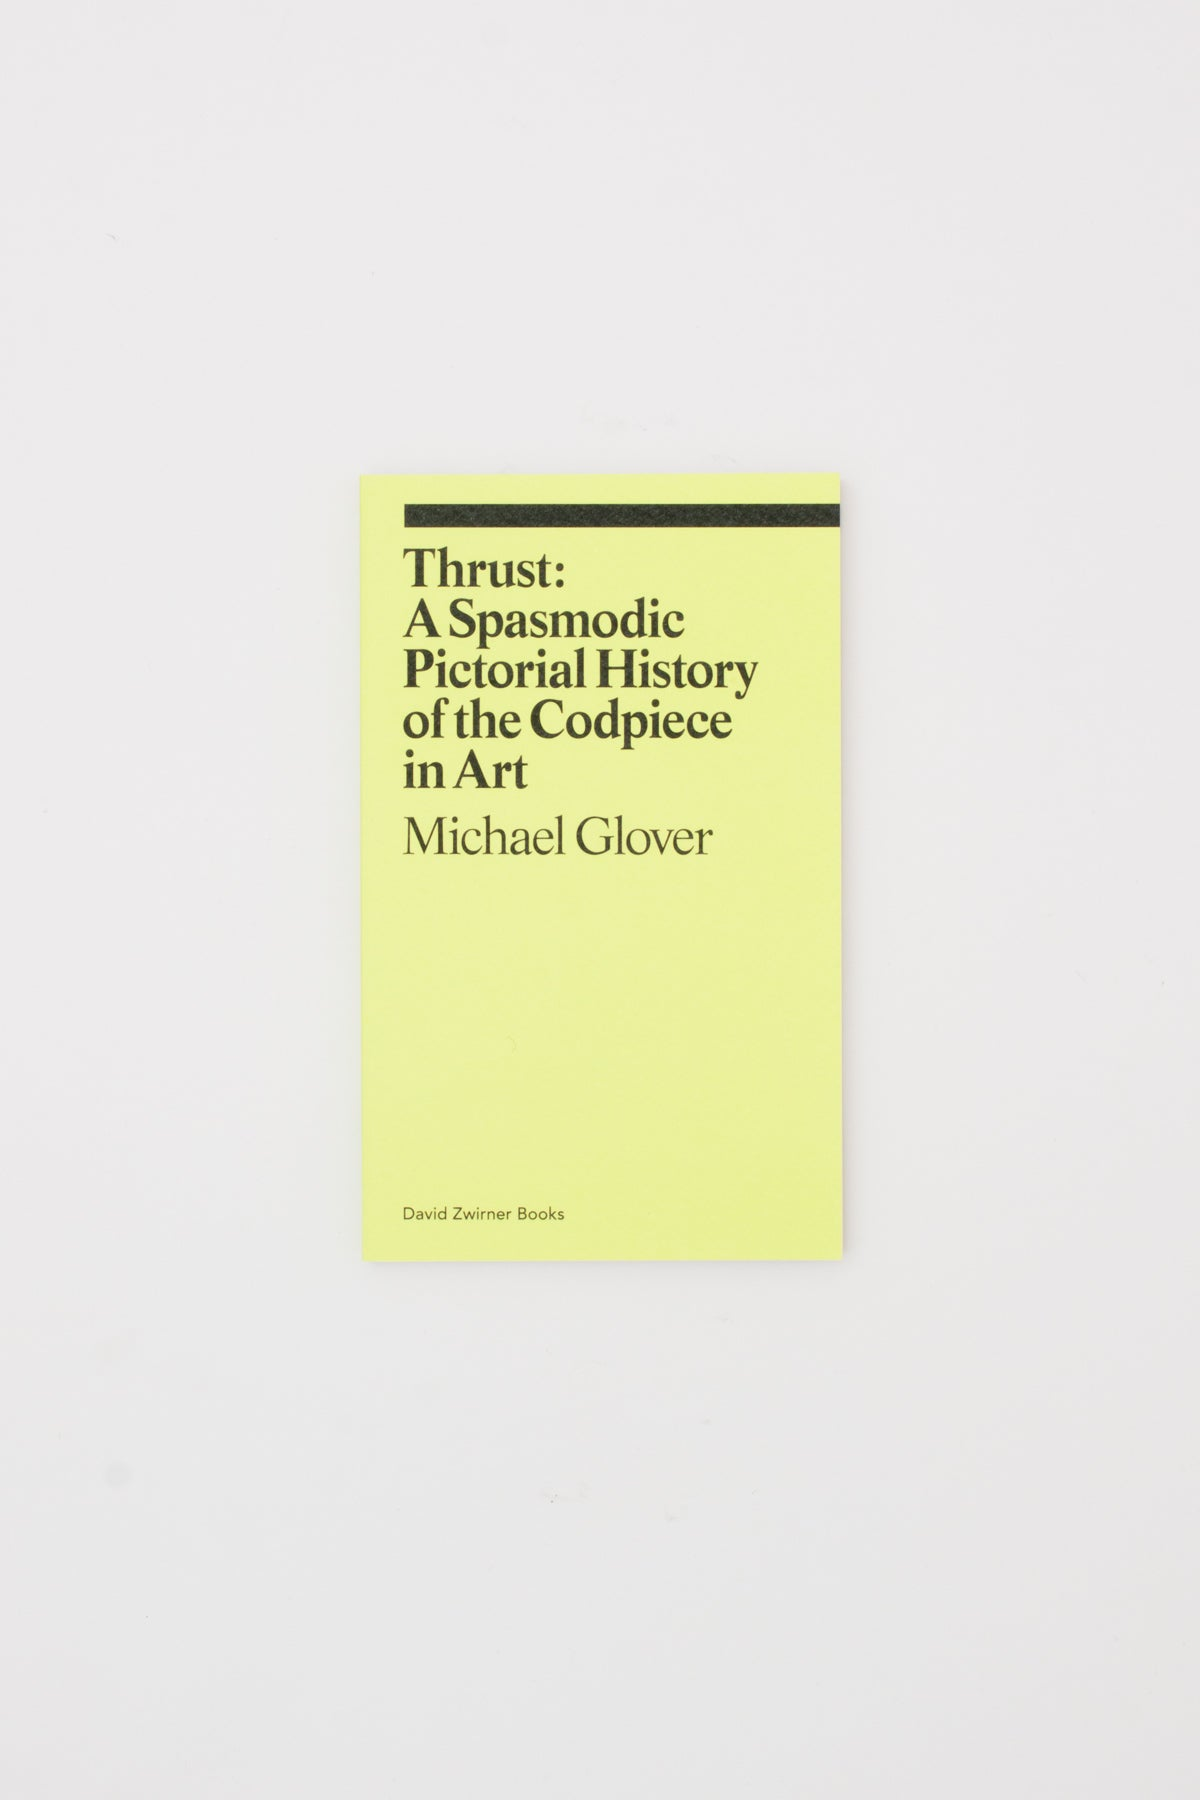 Thrust: A Spasmodic Pictorial History of the Codpiece in Art - Michael Glover